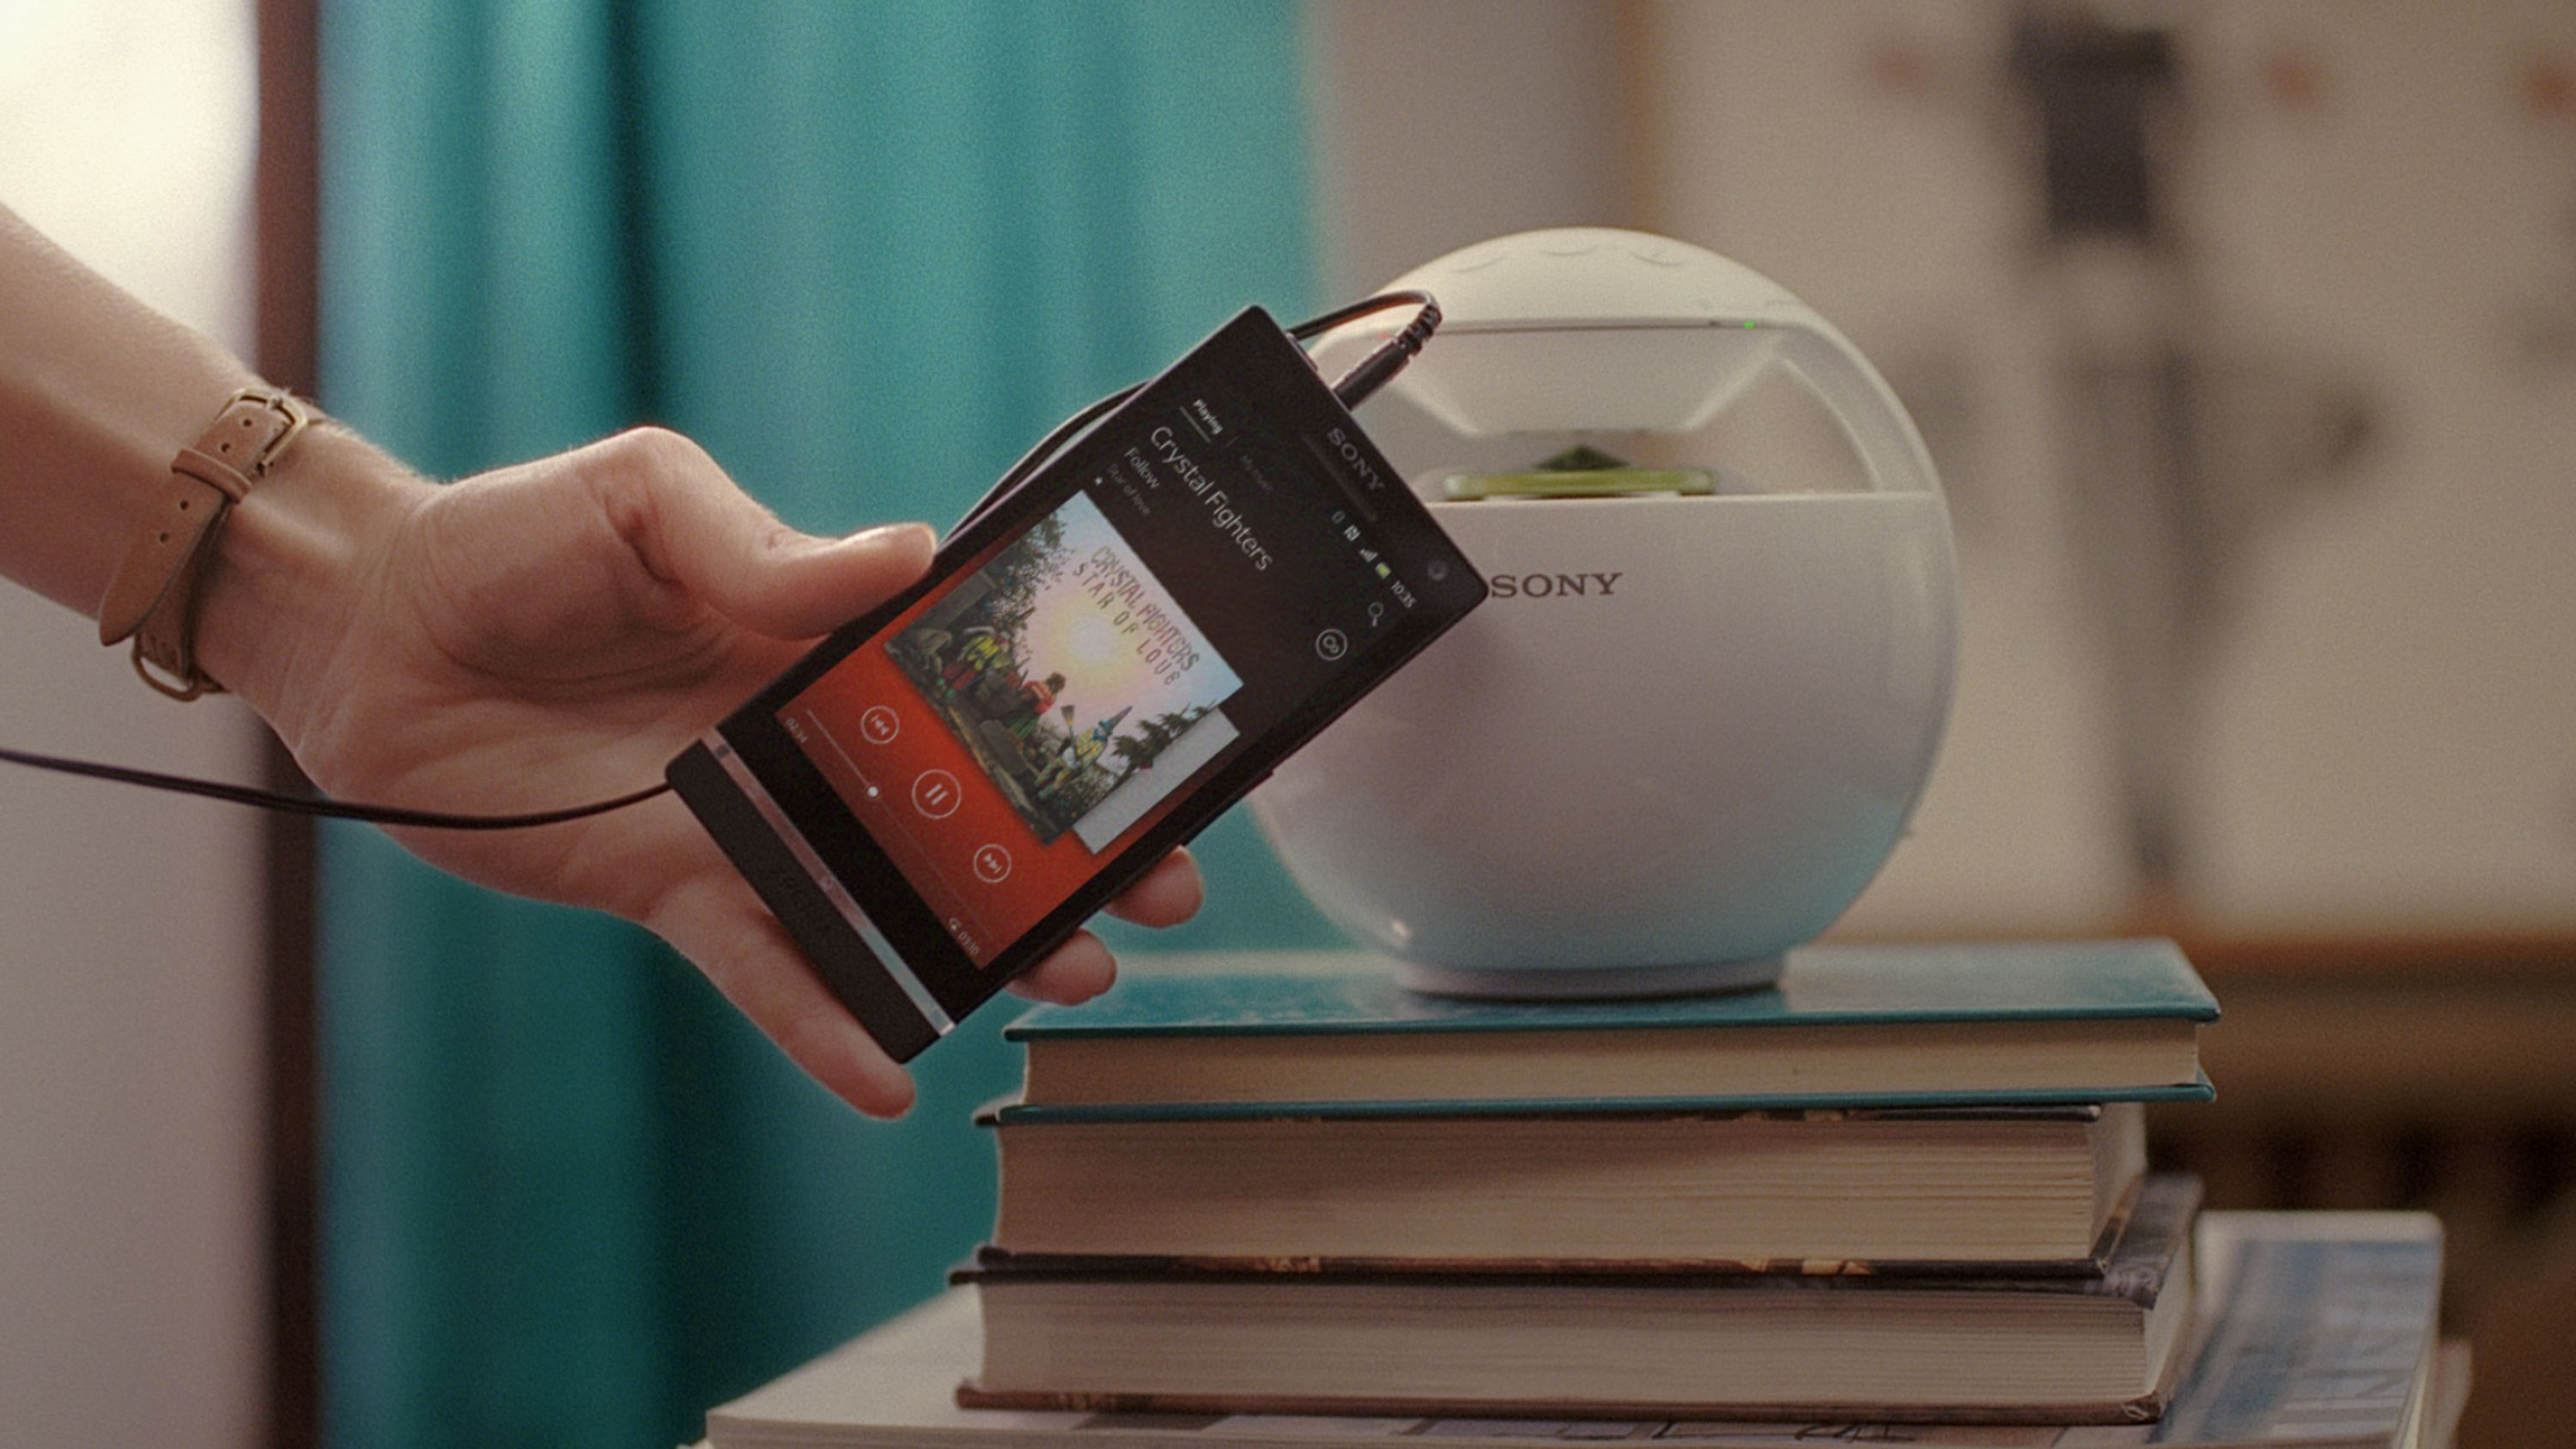 Sony Mobile Launches an Integrated Campaign for Its New Xperia Range ...